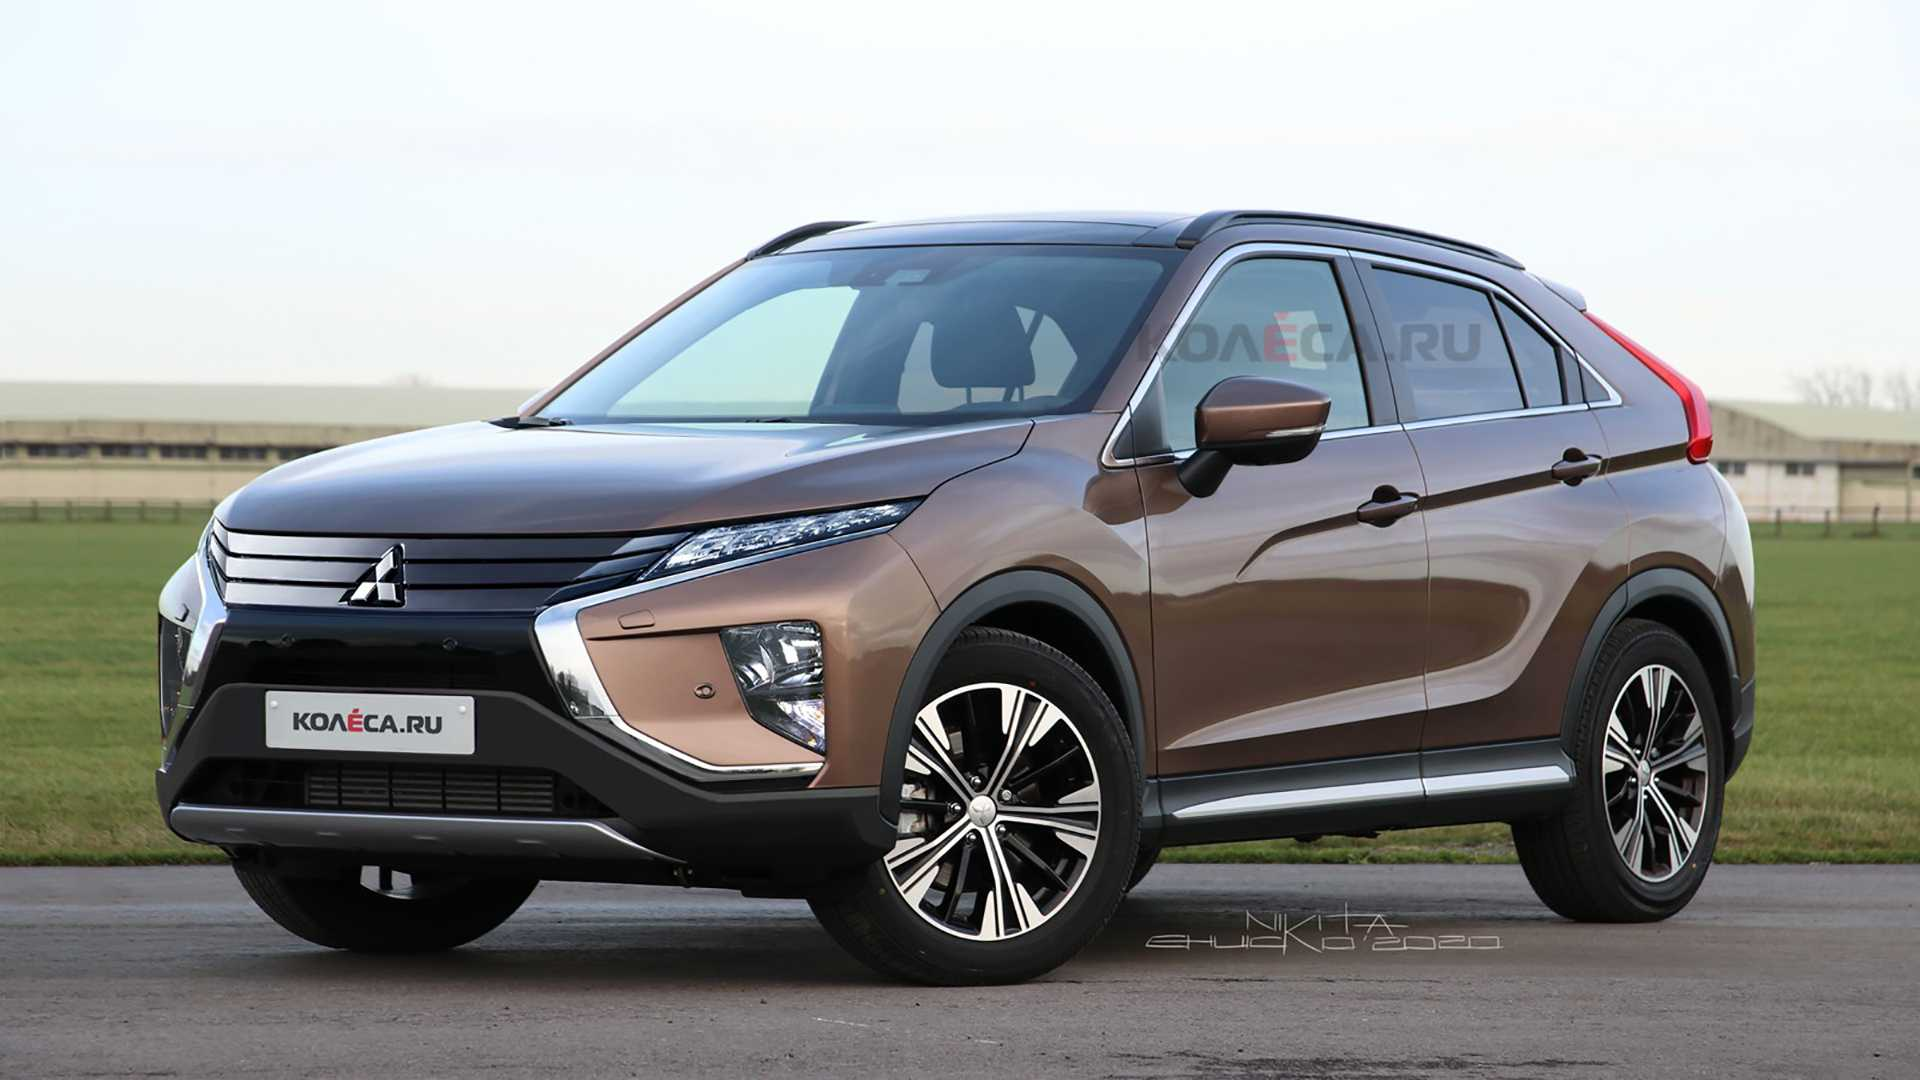 Mitsubishi's small Eclipse Cross SUV gets an update with a plug-in hybrid (PHEV) to follow next year